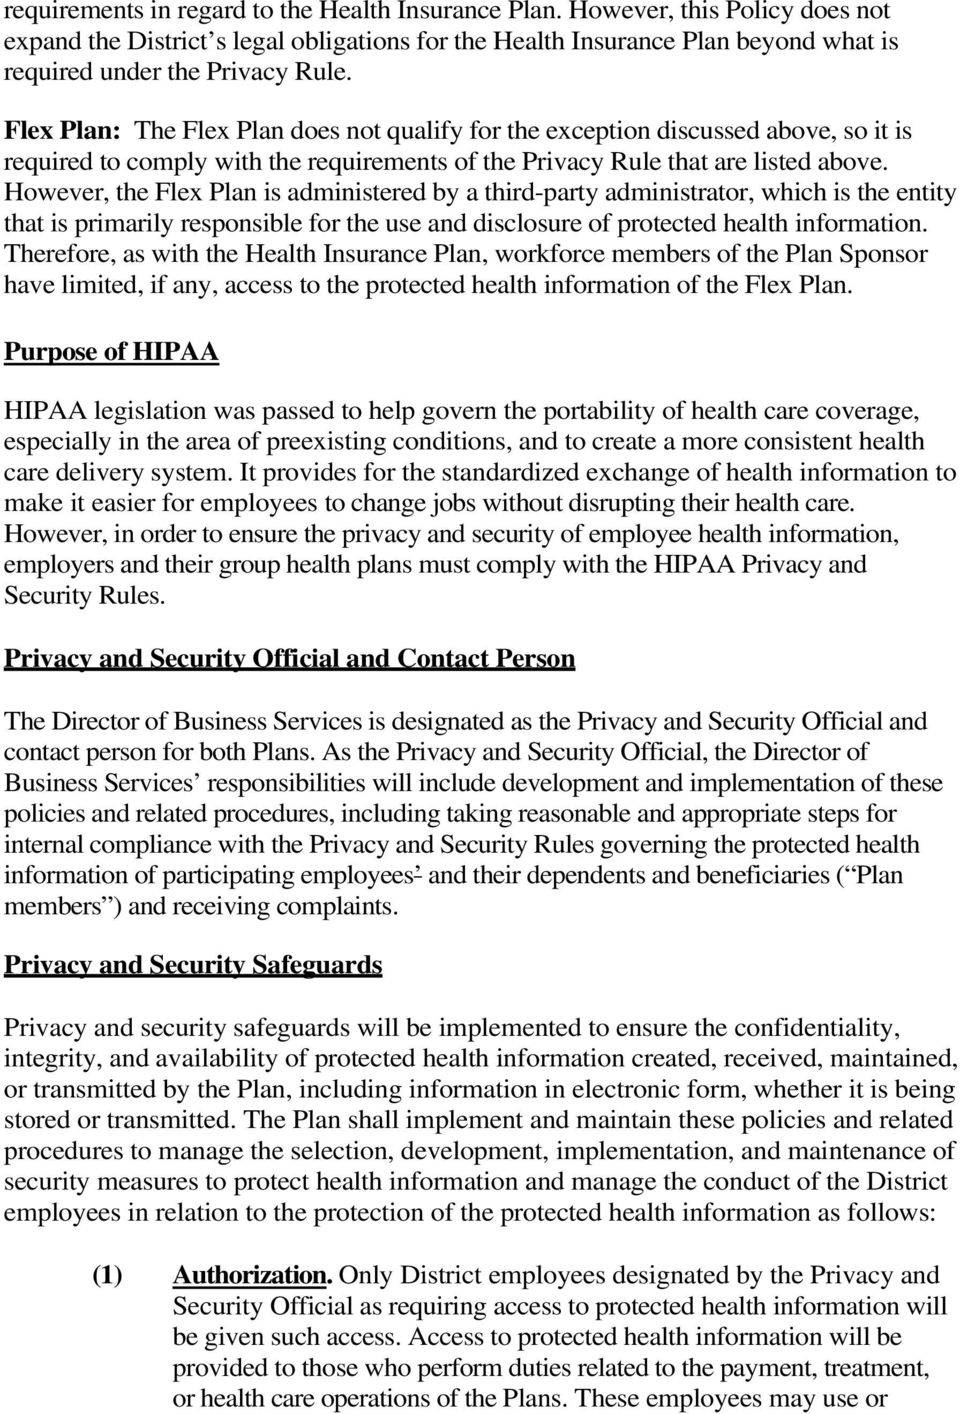 However, the Flex Plan is administered by a third-party administrator, which is the entity that is primarily responsible for the use and disclosure of protected health information.